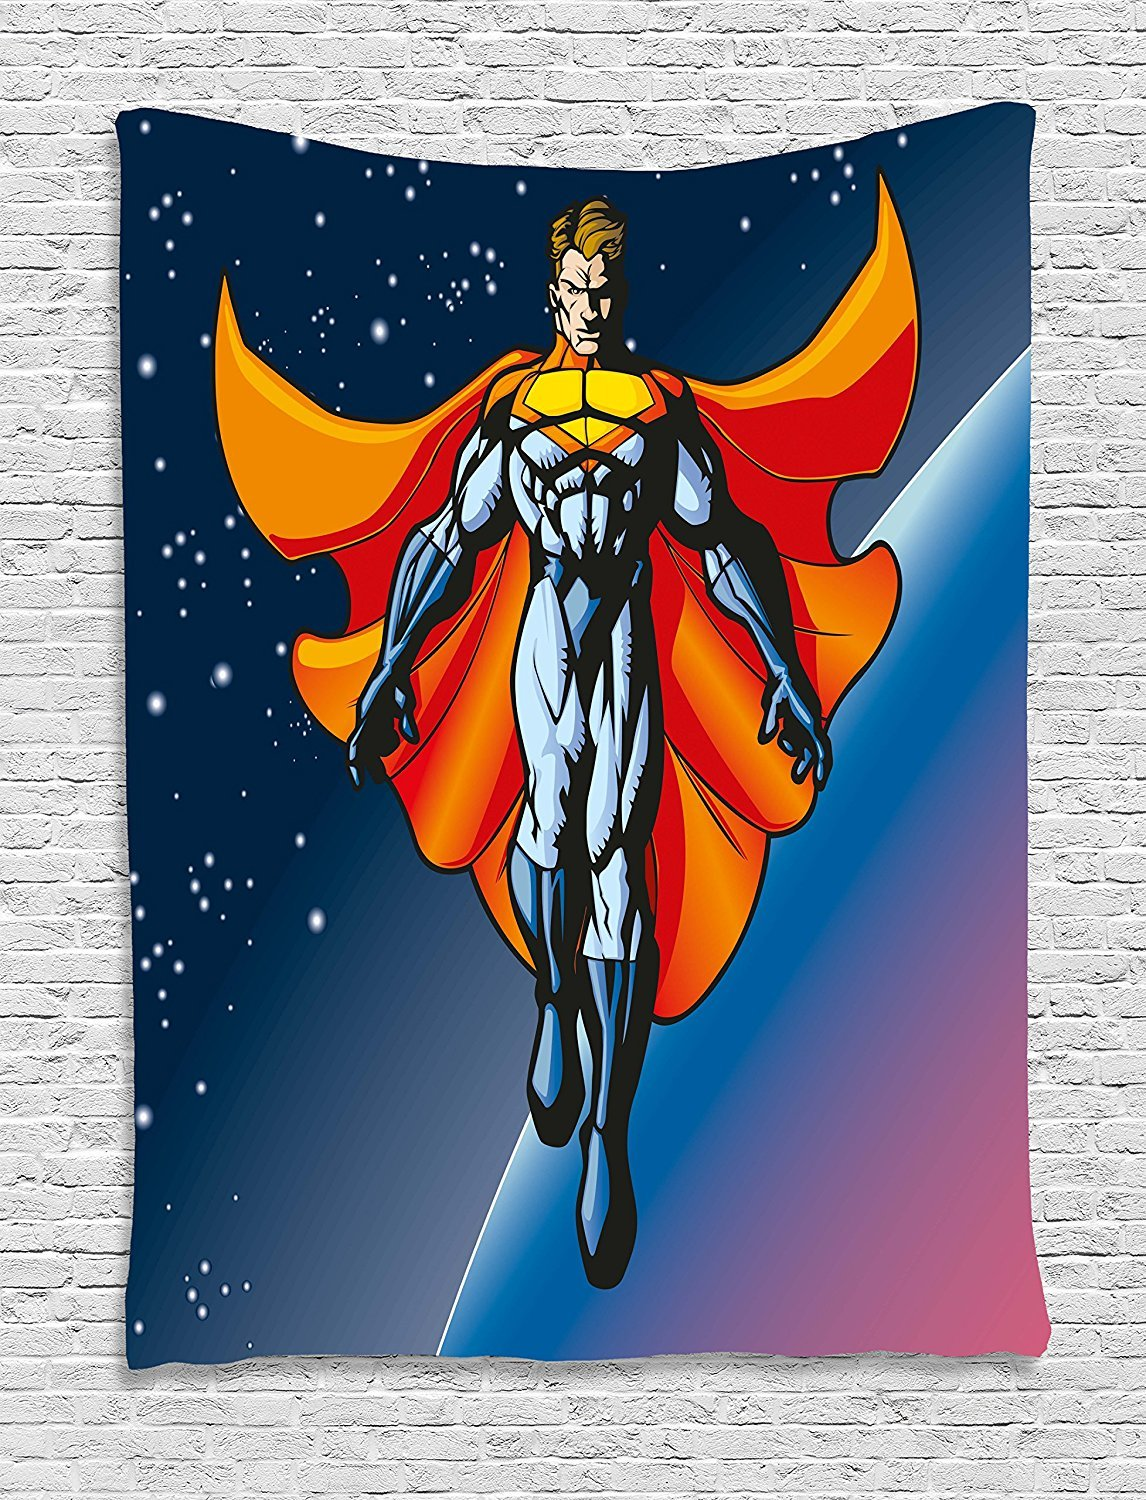 asddcdfdd Superhero Tapestry, Mutant Hero Floating in Space Planetary Stars Android Milky Way Background, Wall Hanging for Bedroom Living Room Dorm, 60 W X 80 L Inches, Night Blue Orange